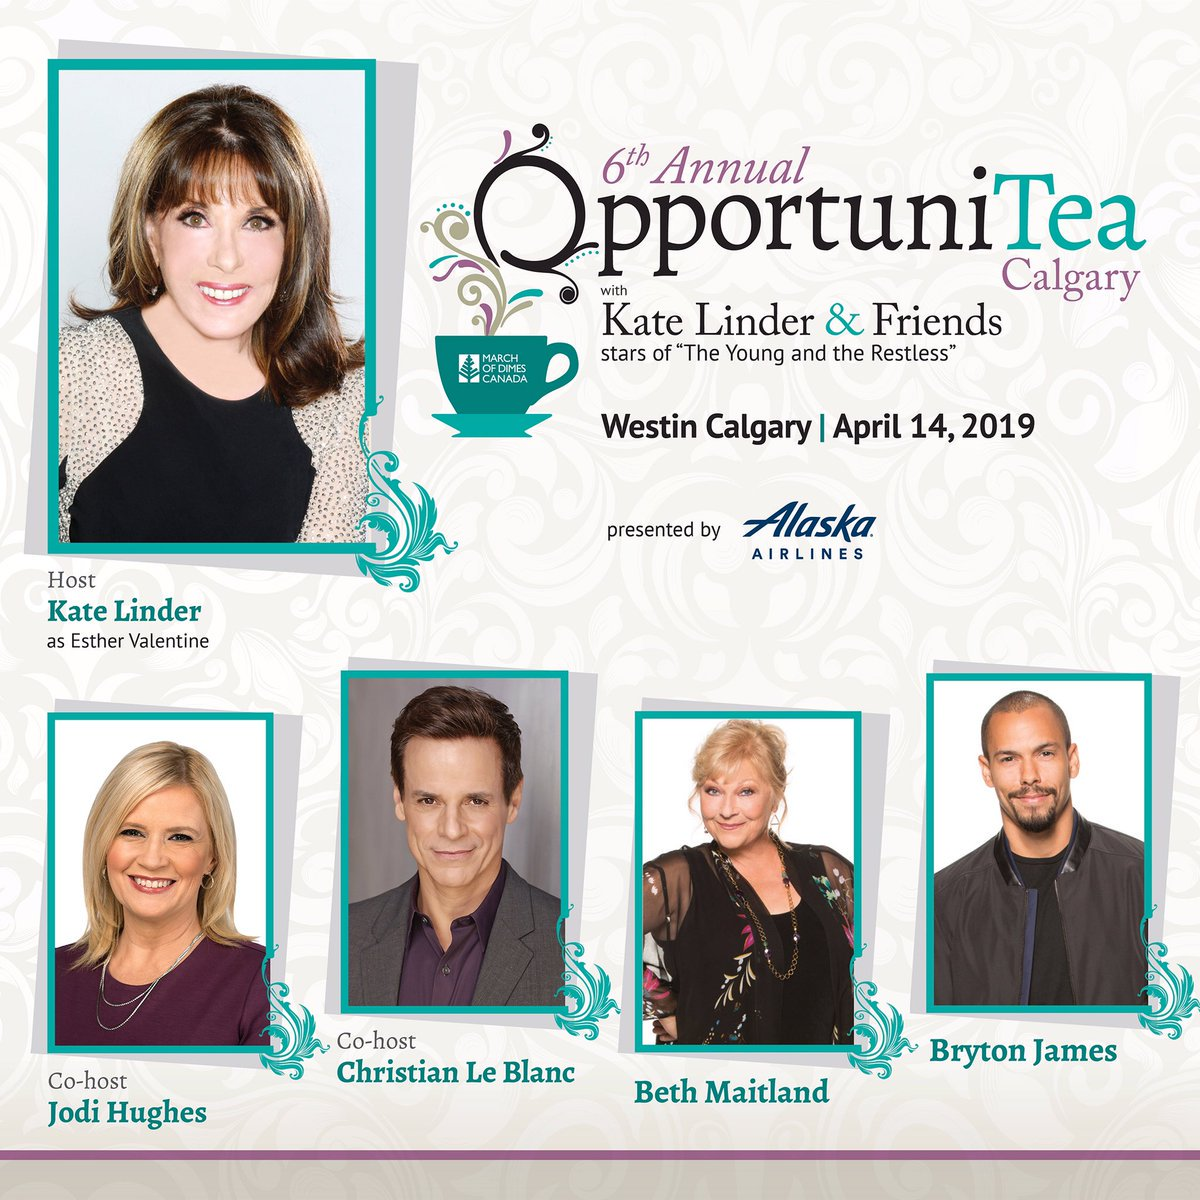 @YandR_CBC  fans if you are a #marriottbovoy  member, here is a chance to experience an exclusive meet and greet with the stars from The Young and the Restless, 2 tix to #OpportuniTEA , a night at The Westin Calgary, plus more! visit:  https://moments.marriottbonvoy.com/moments/8014/auction/40367  … @KATELINDER   @modcanada